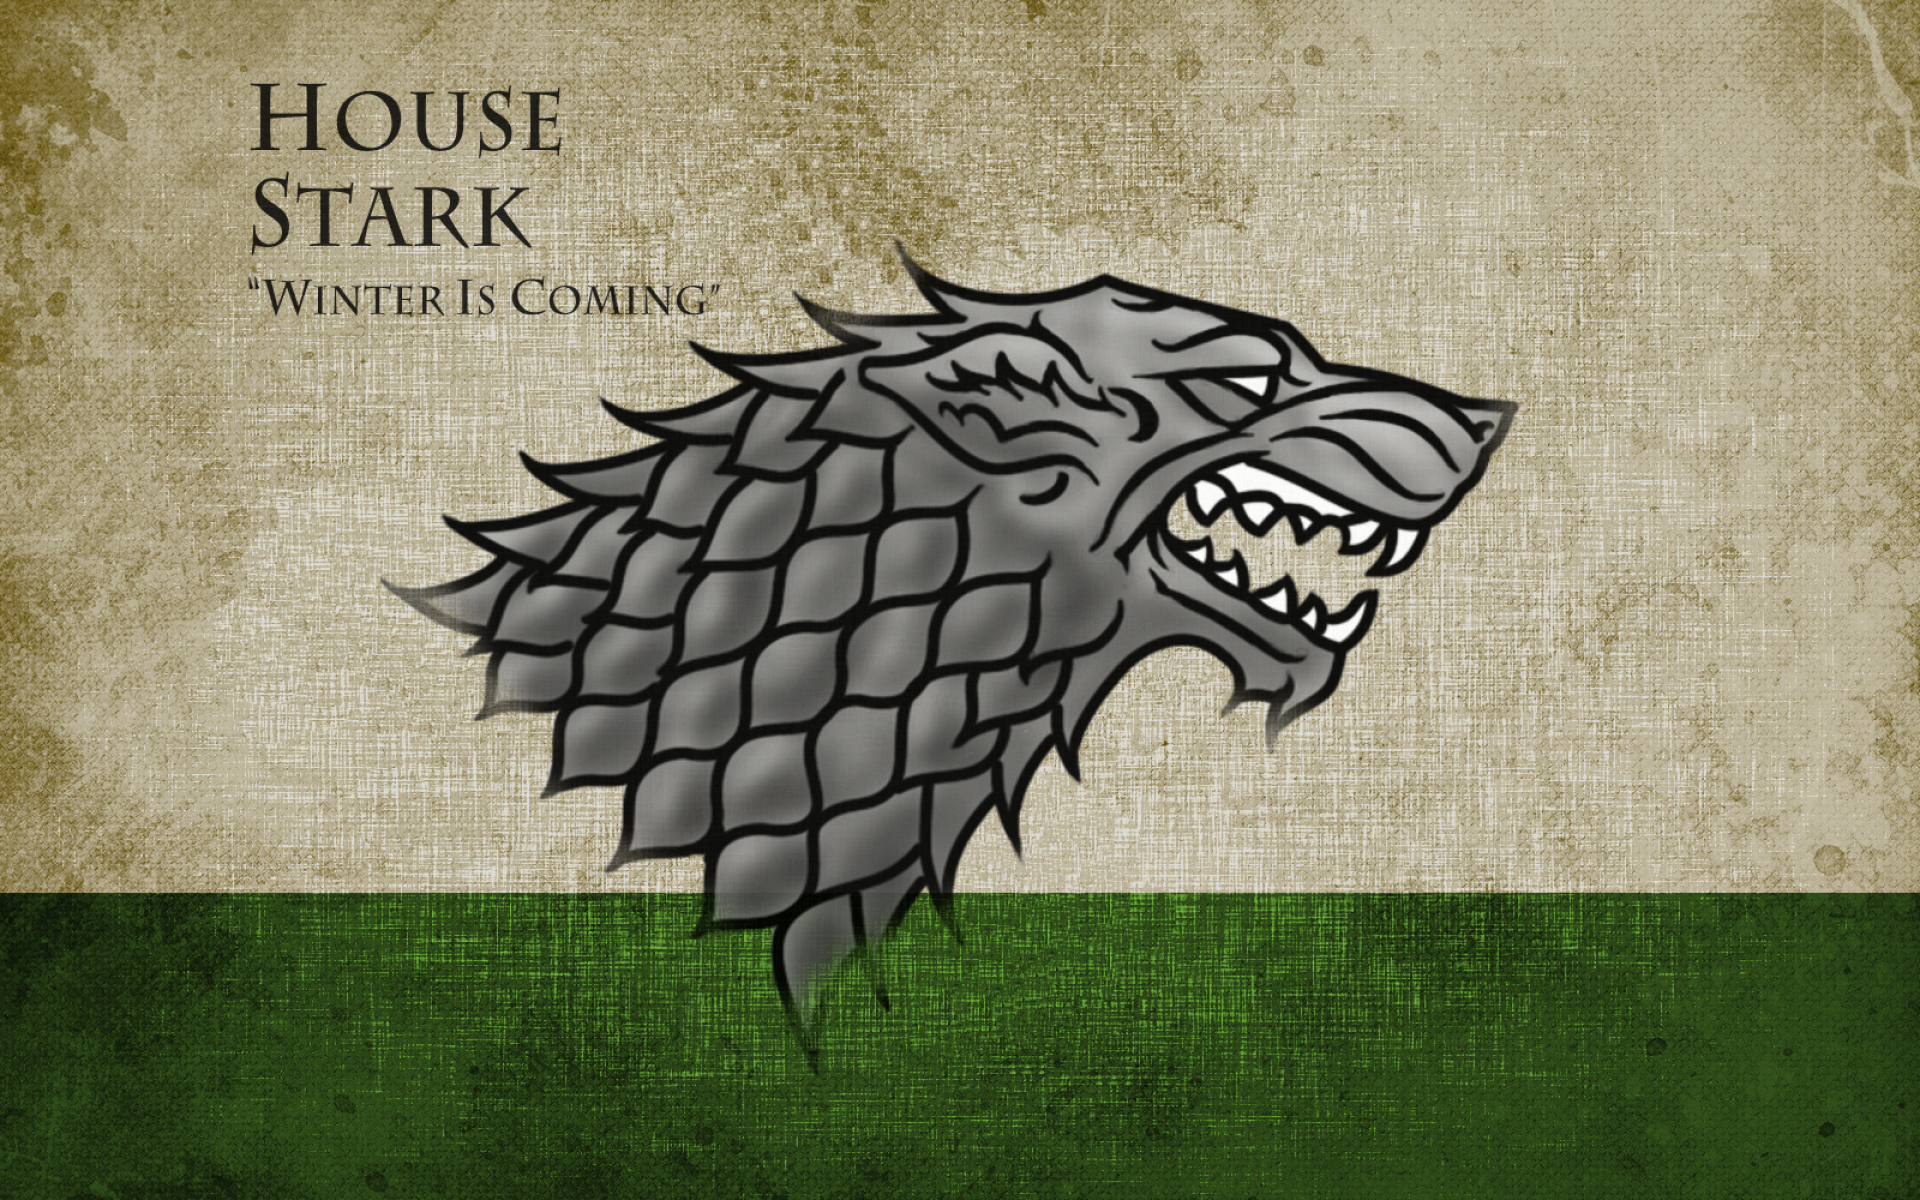 Game of thrones house stark soundtrack download